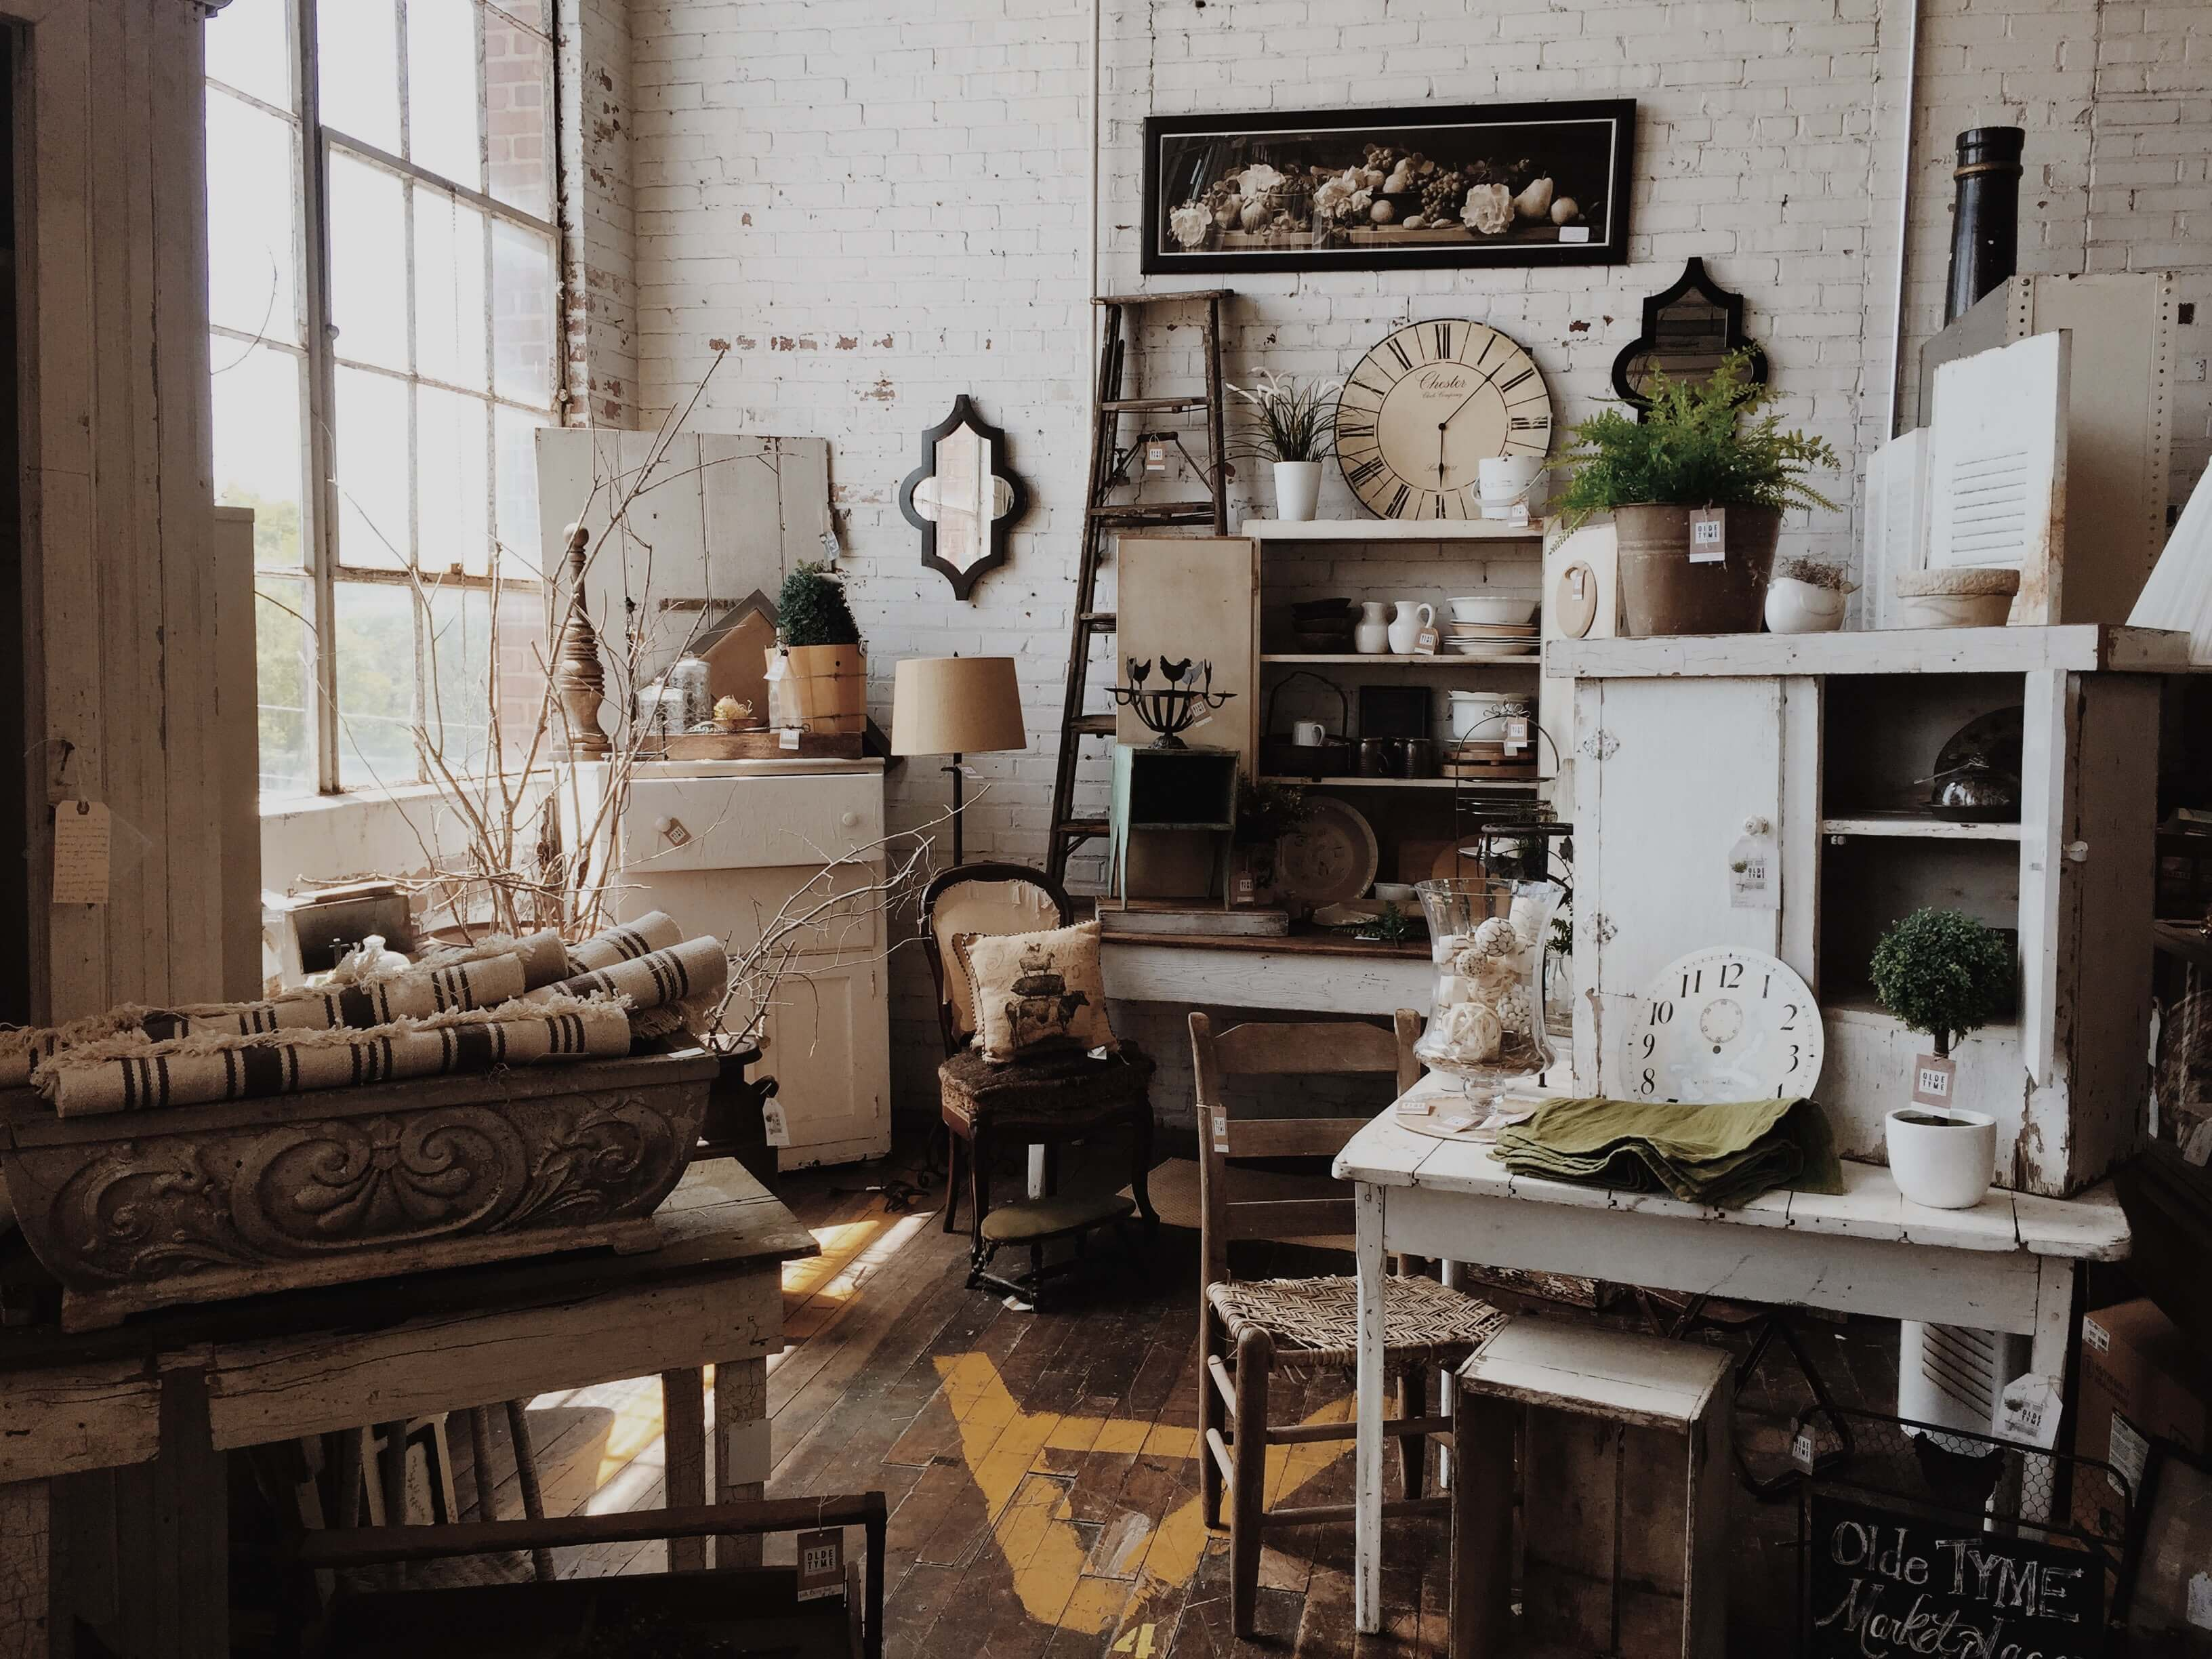 furniture outlets to save money